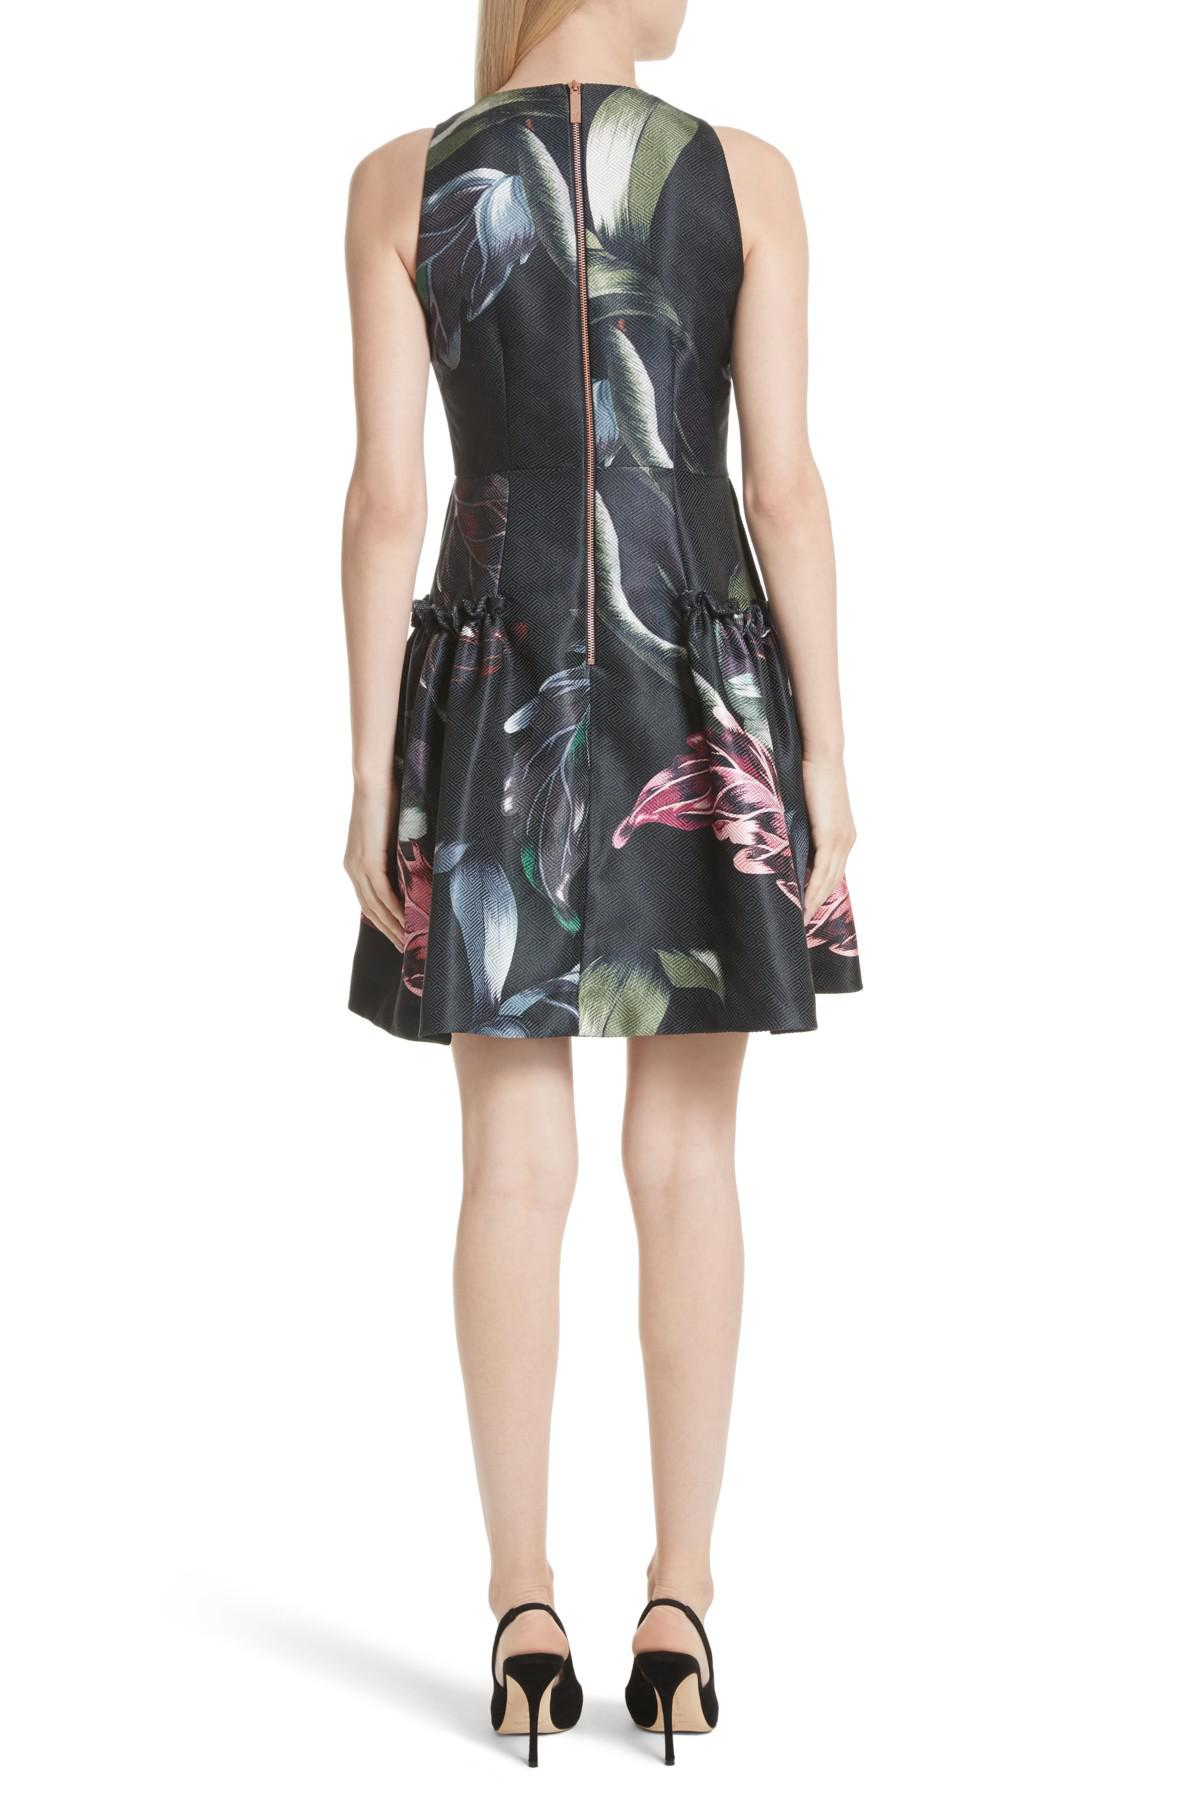 73f652dc68b4c Lyst - Ted Baker Sarahe Floral Fit   Flare Dress in Black